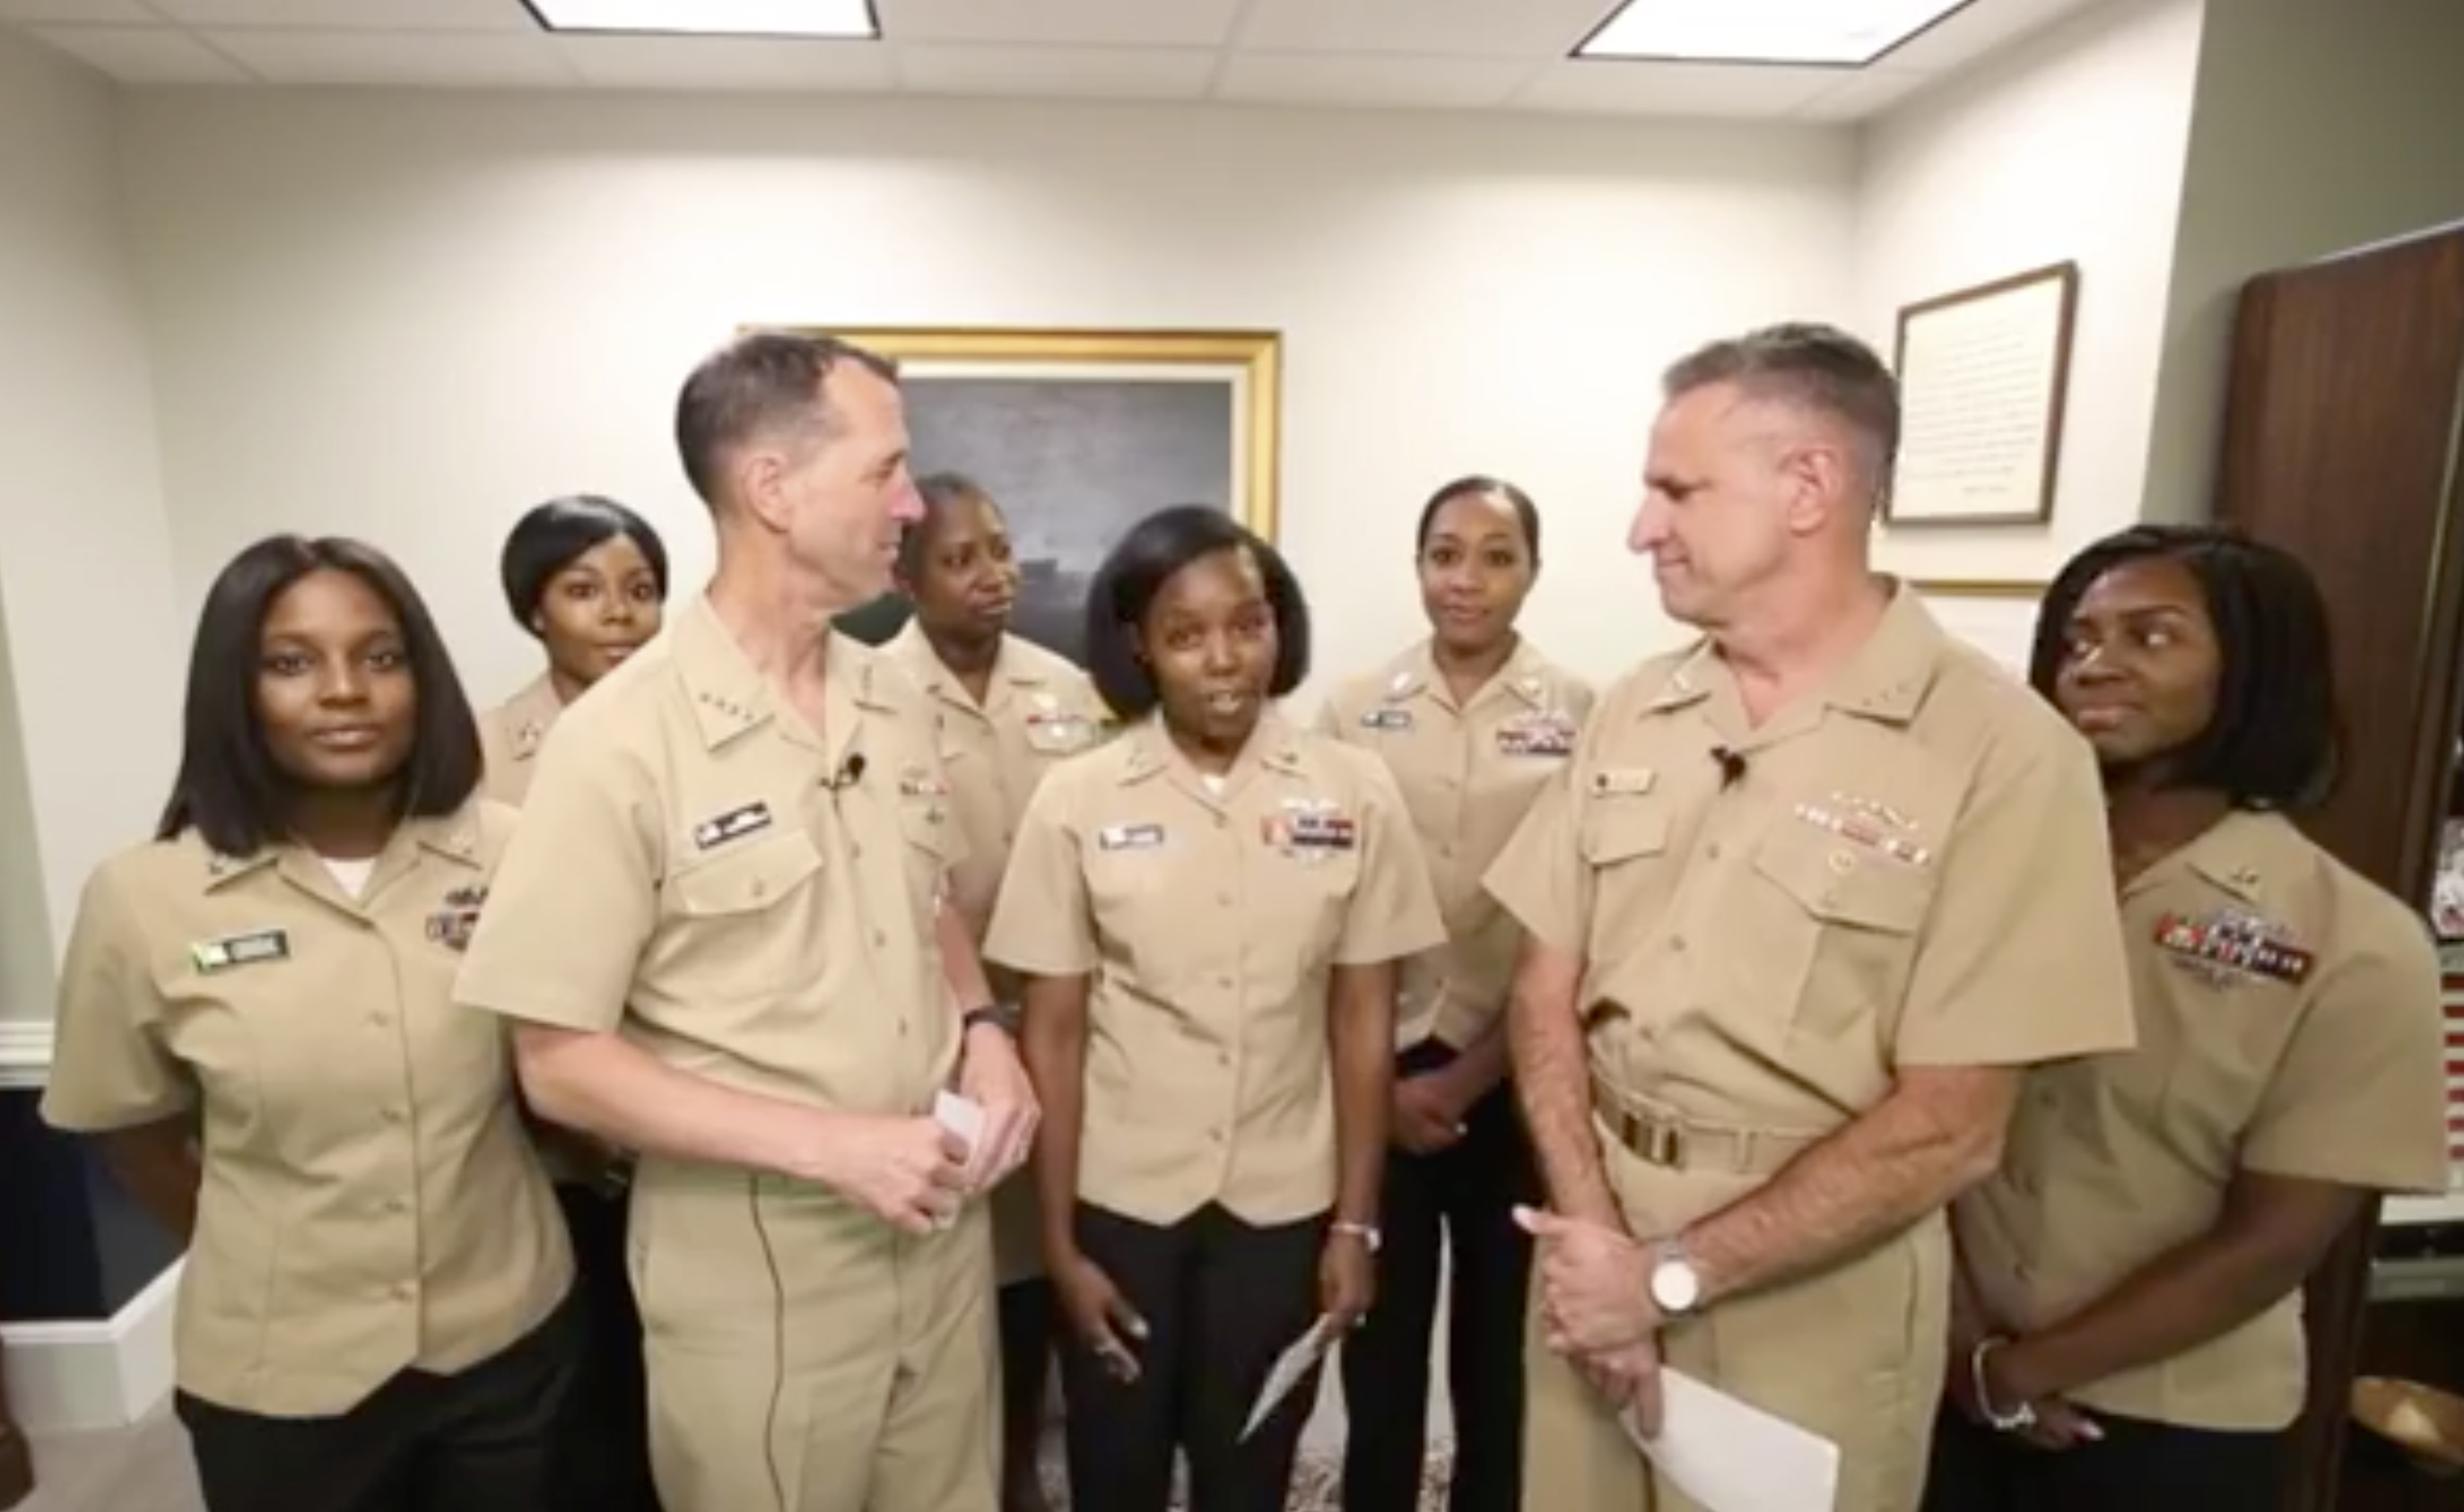 Yeoman First Class LaToya Jones, center, speaks as Chief of Naval Operations Adm. John Richardson, left of center, and Chief of Naval Personnel Adm. Robert Burke, right of center, and other members of a Navy working group.